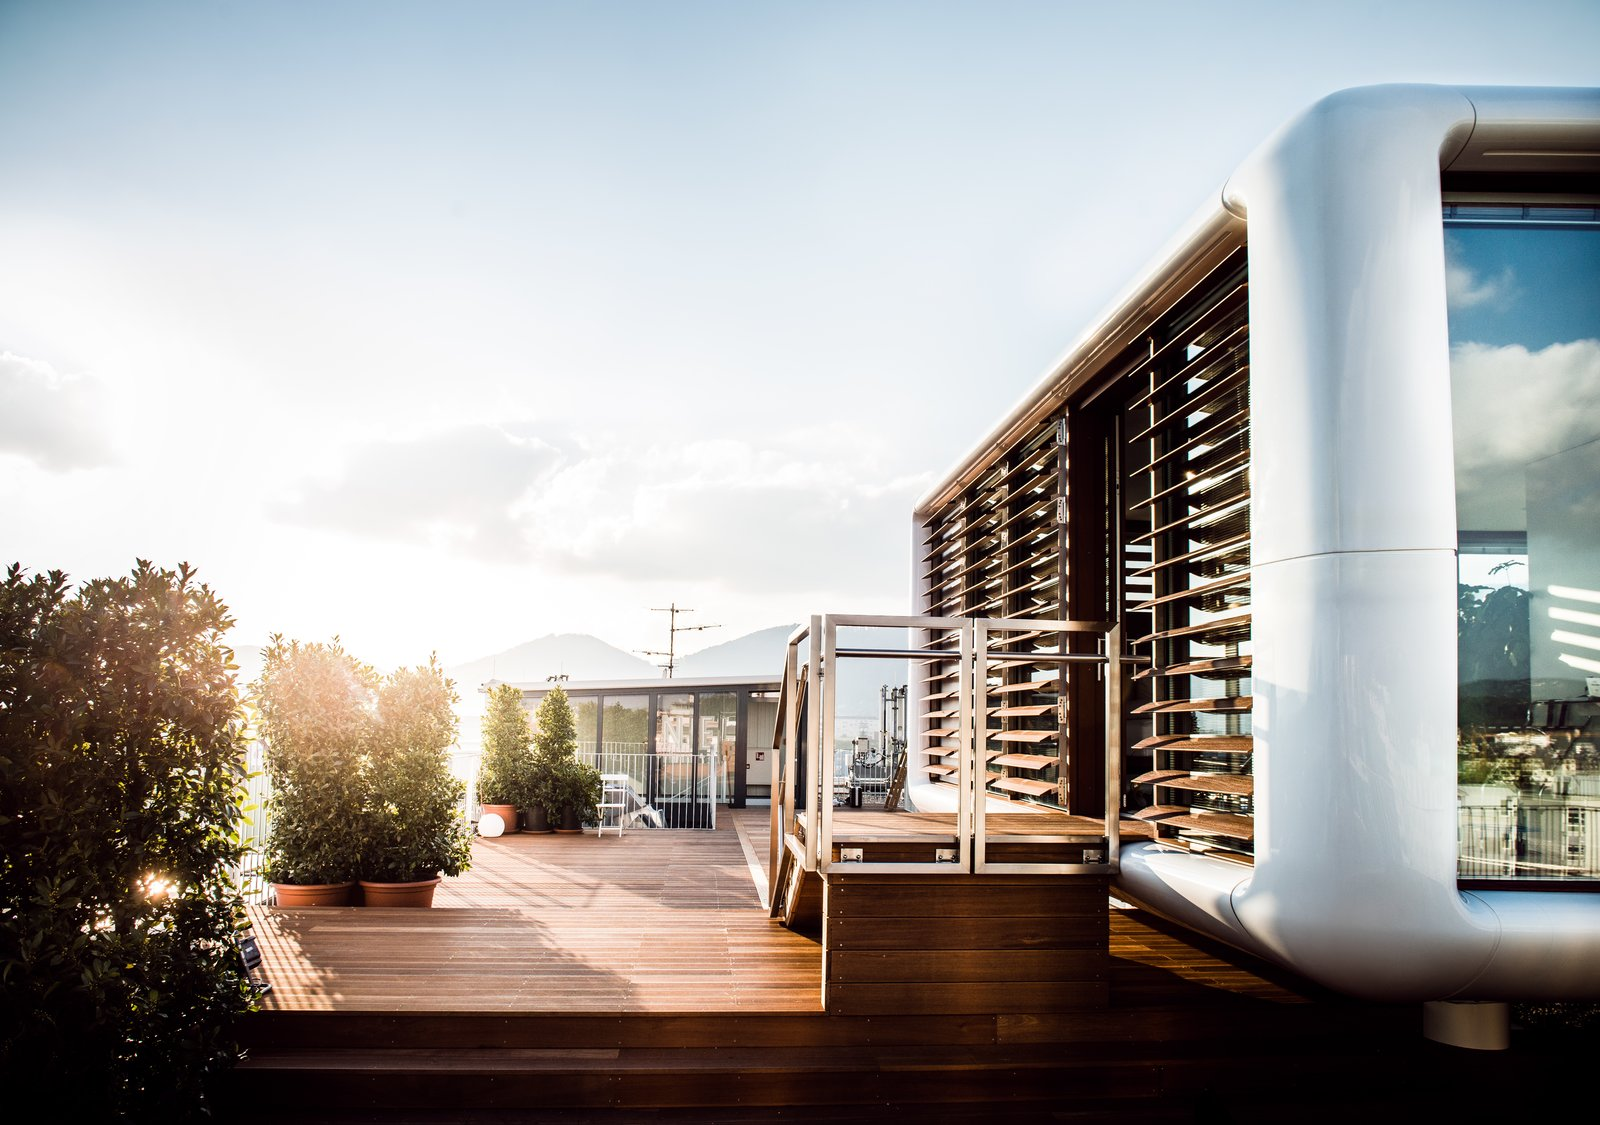 Outdoor, Rooftop, and Wood Patio, Porch, Deck  Photo 3 of 8 in Stay in a Prefab Cube Placed Atop a Midcentury Hotel in Austria